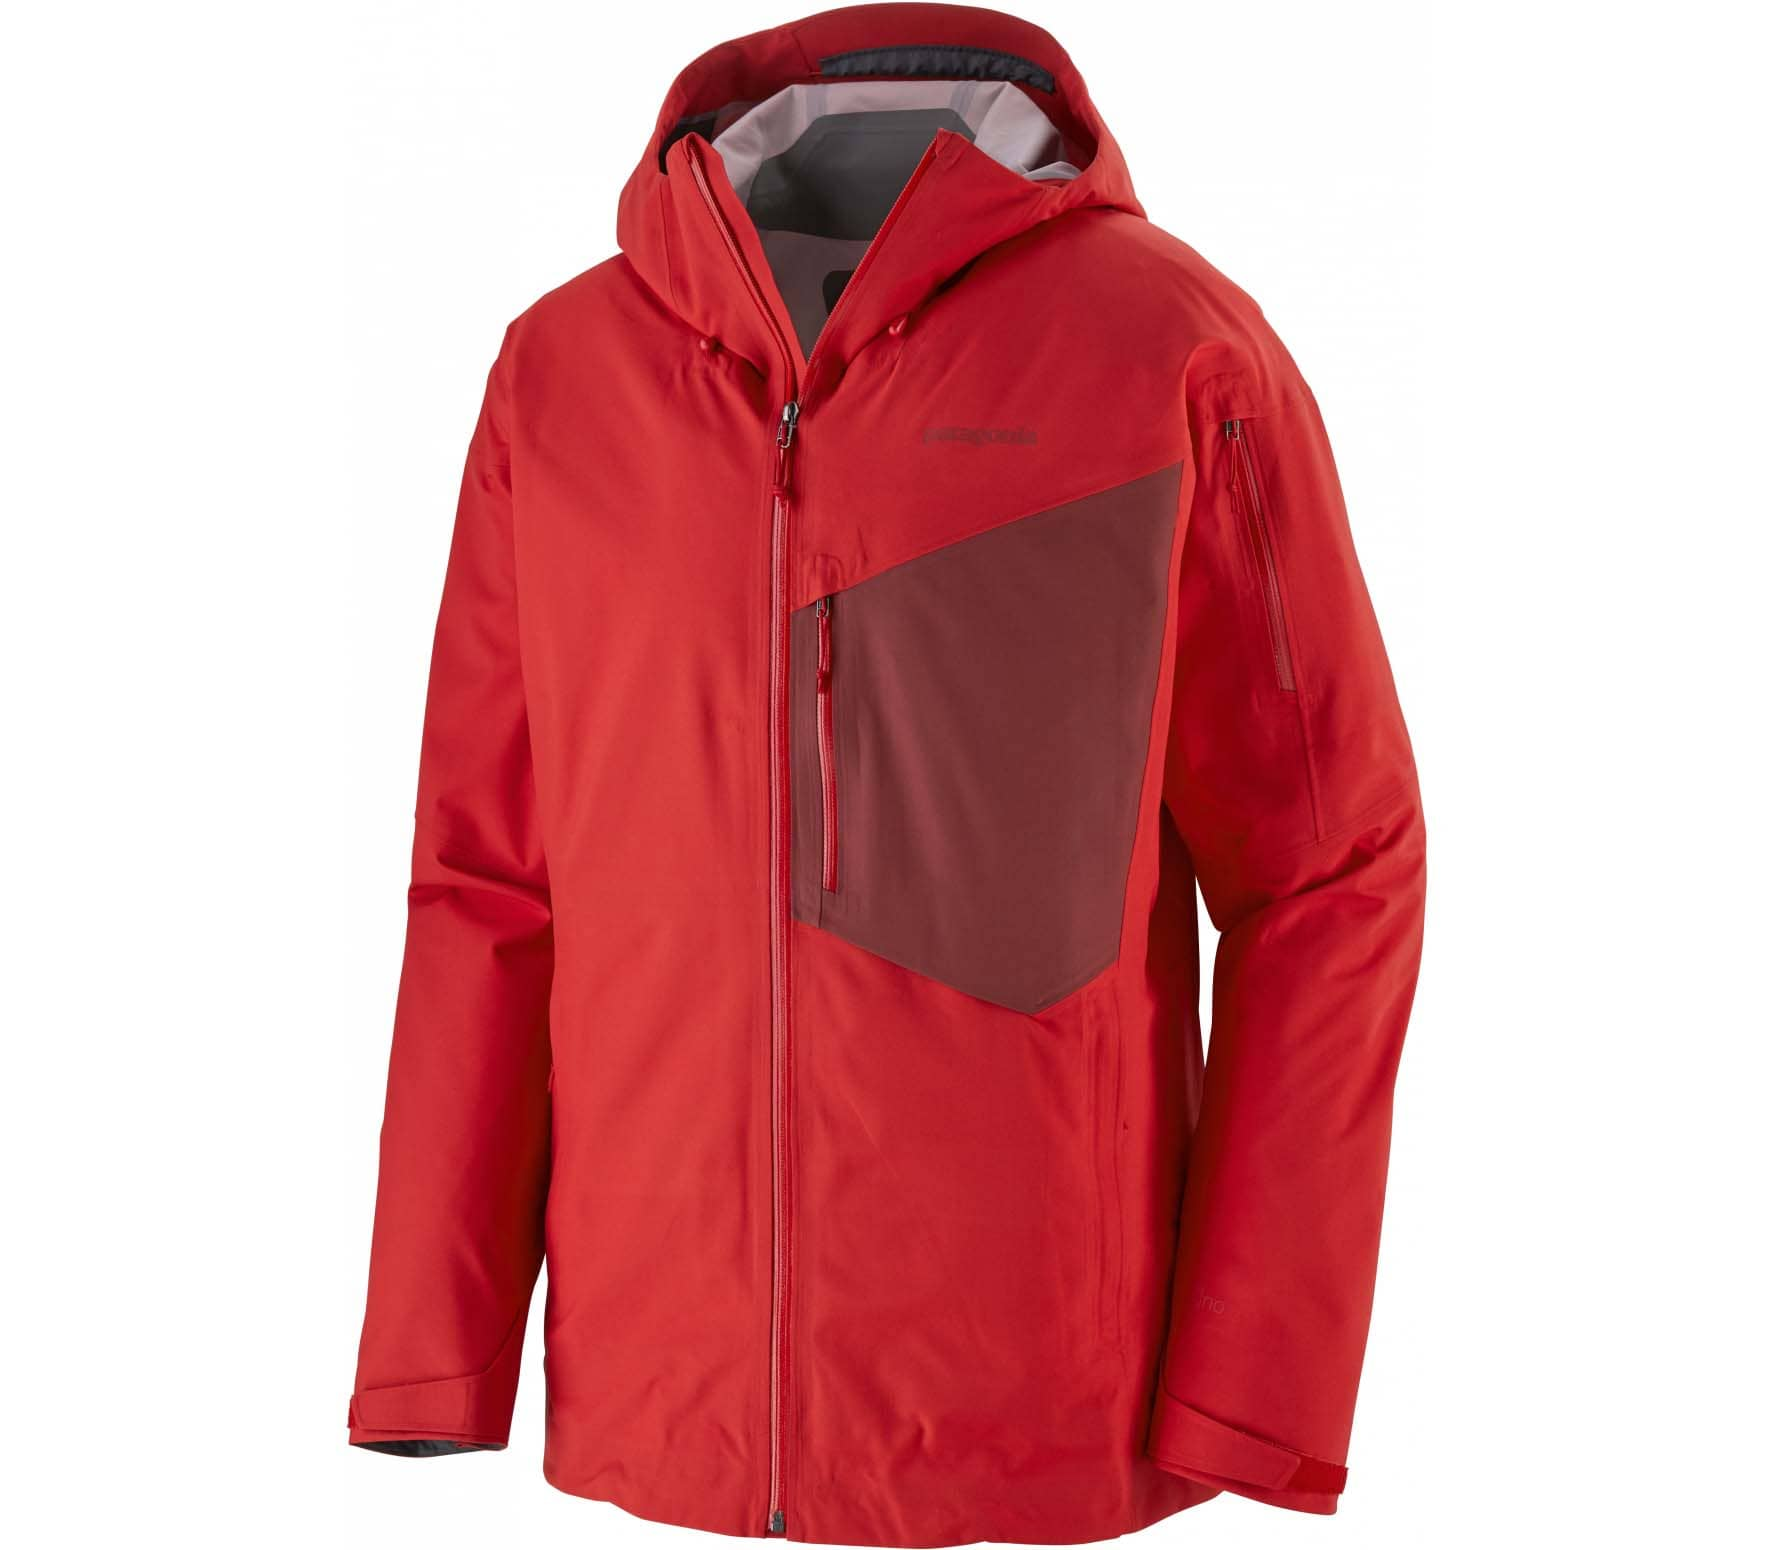 new arrival 8aecd d3f10 Patagonia Snowdrifter Uomo Giacca da neve rosso